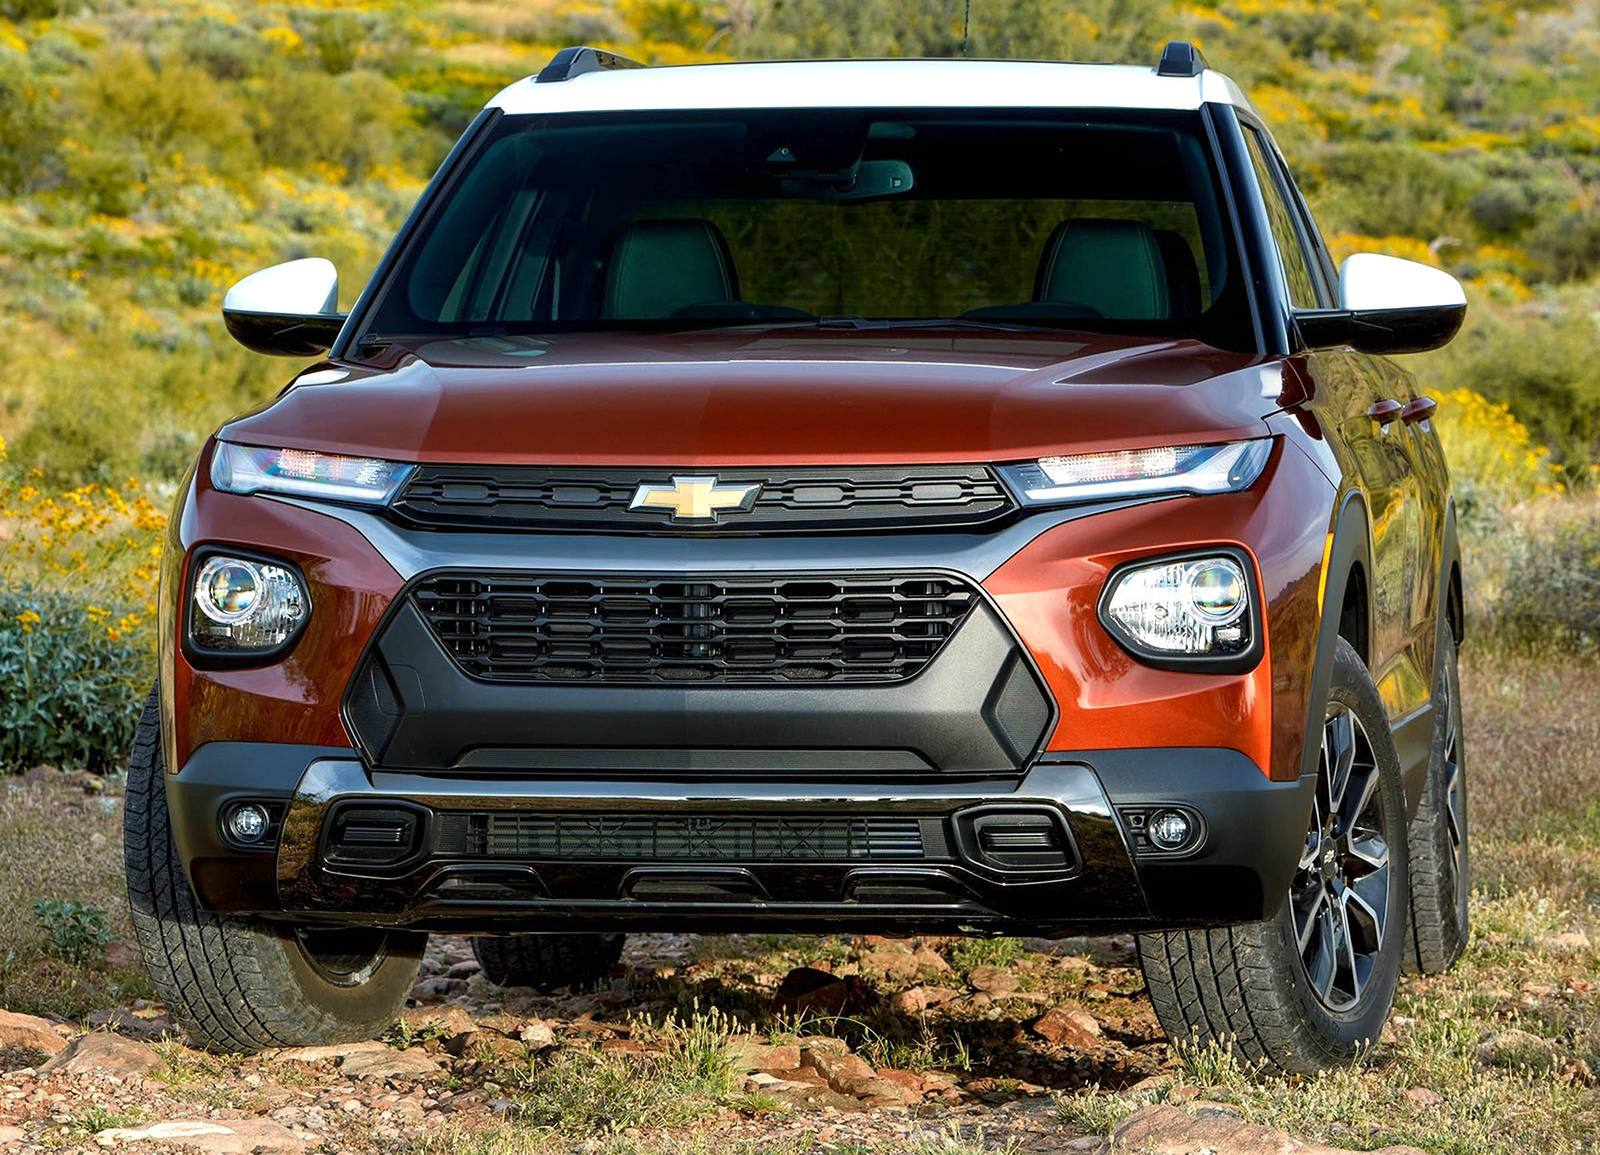 From the front, the Trailblazer displays an oversize grille and rounded hood that's similar in shape to other vehicles in Chevy's stable, most notably the bigger Blazer.